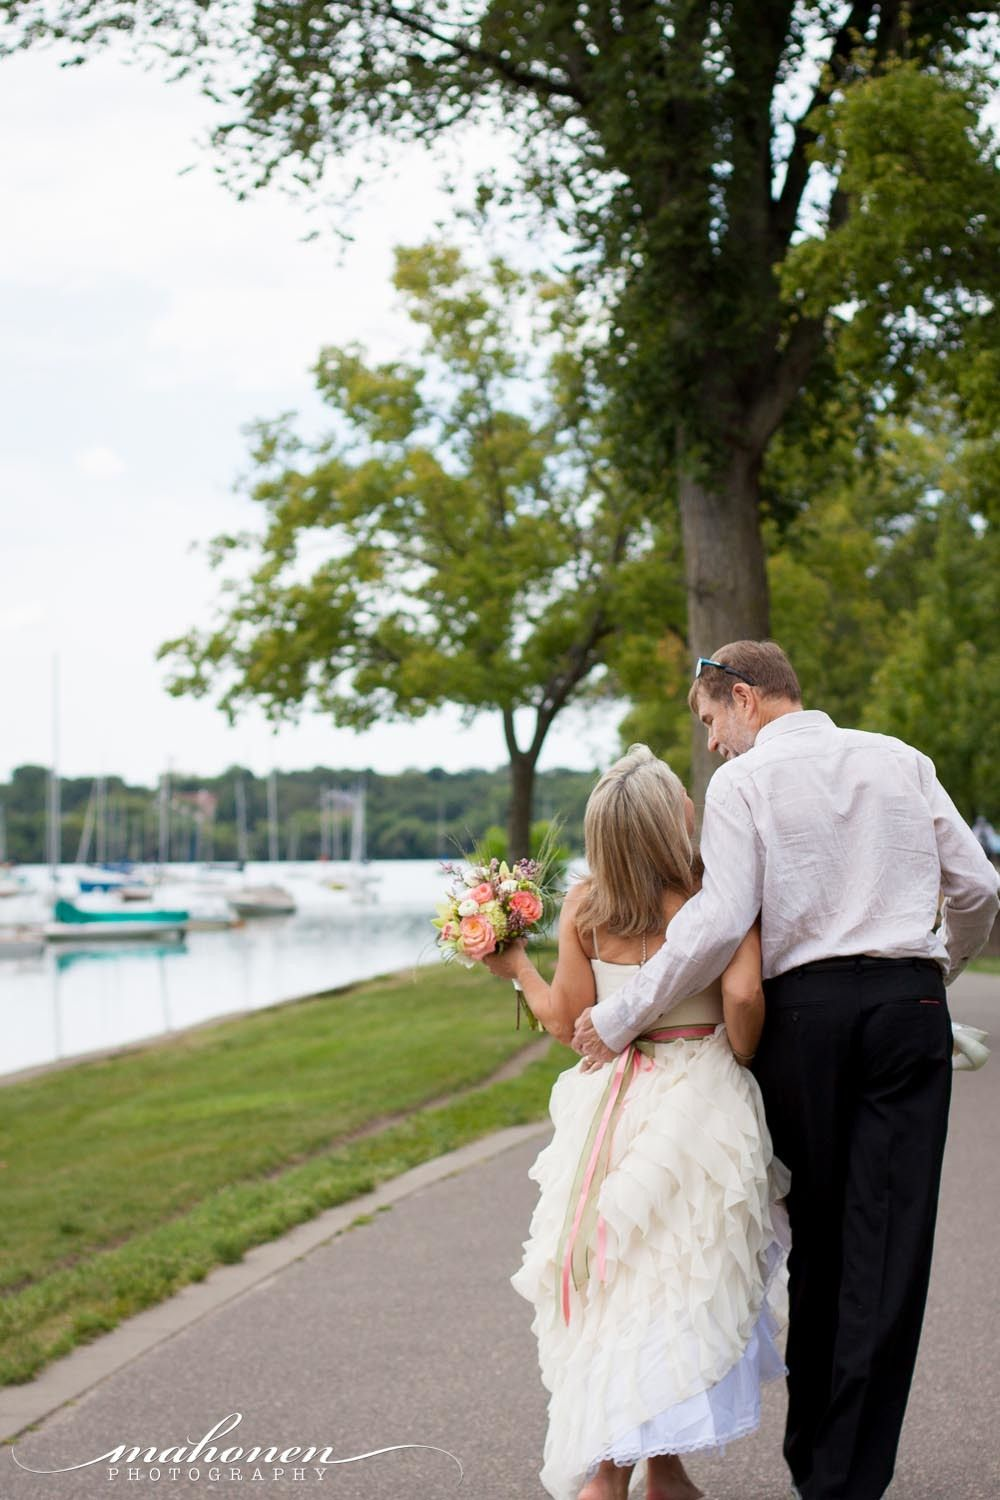 Pin By Mahonen Photography On Wedding Day Moments Pinterest Husband Wife Photographers And